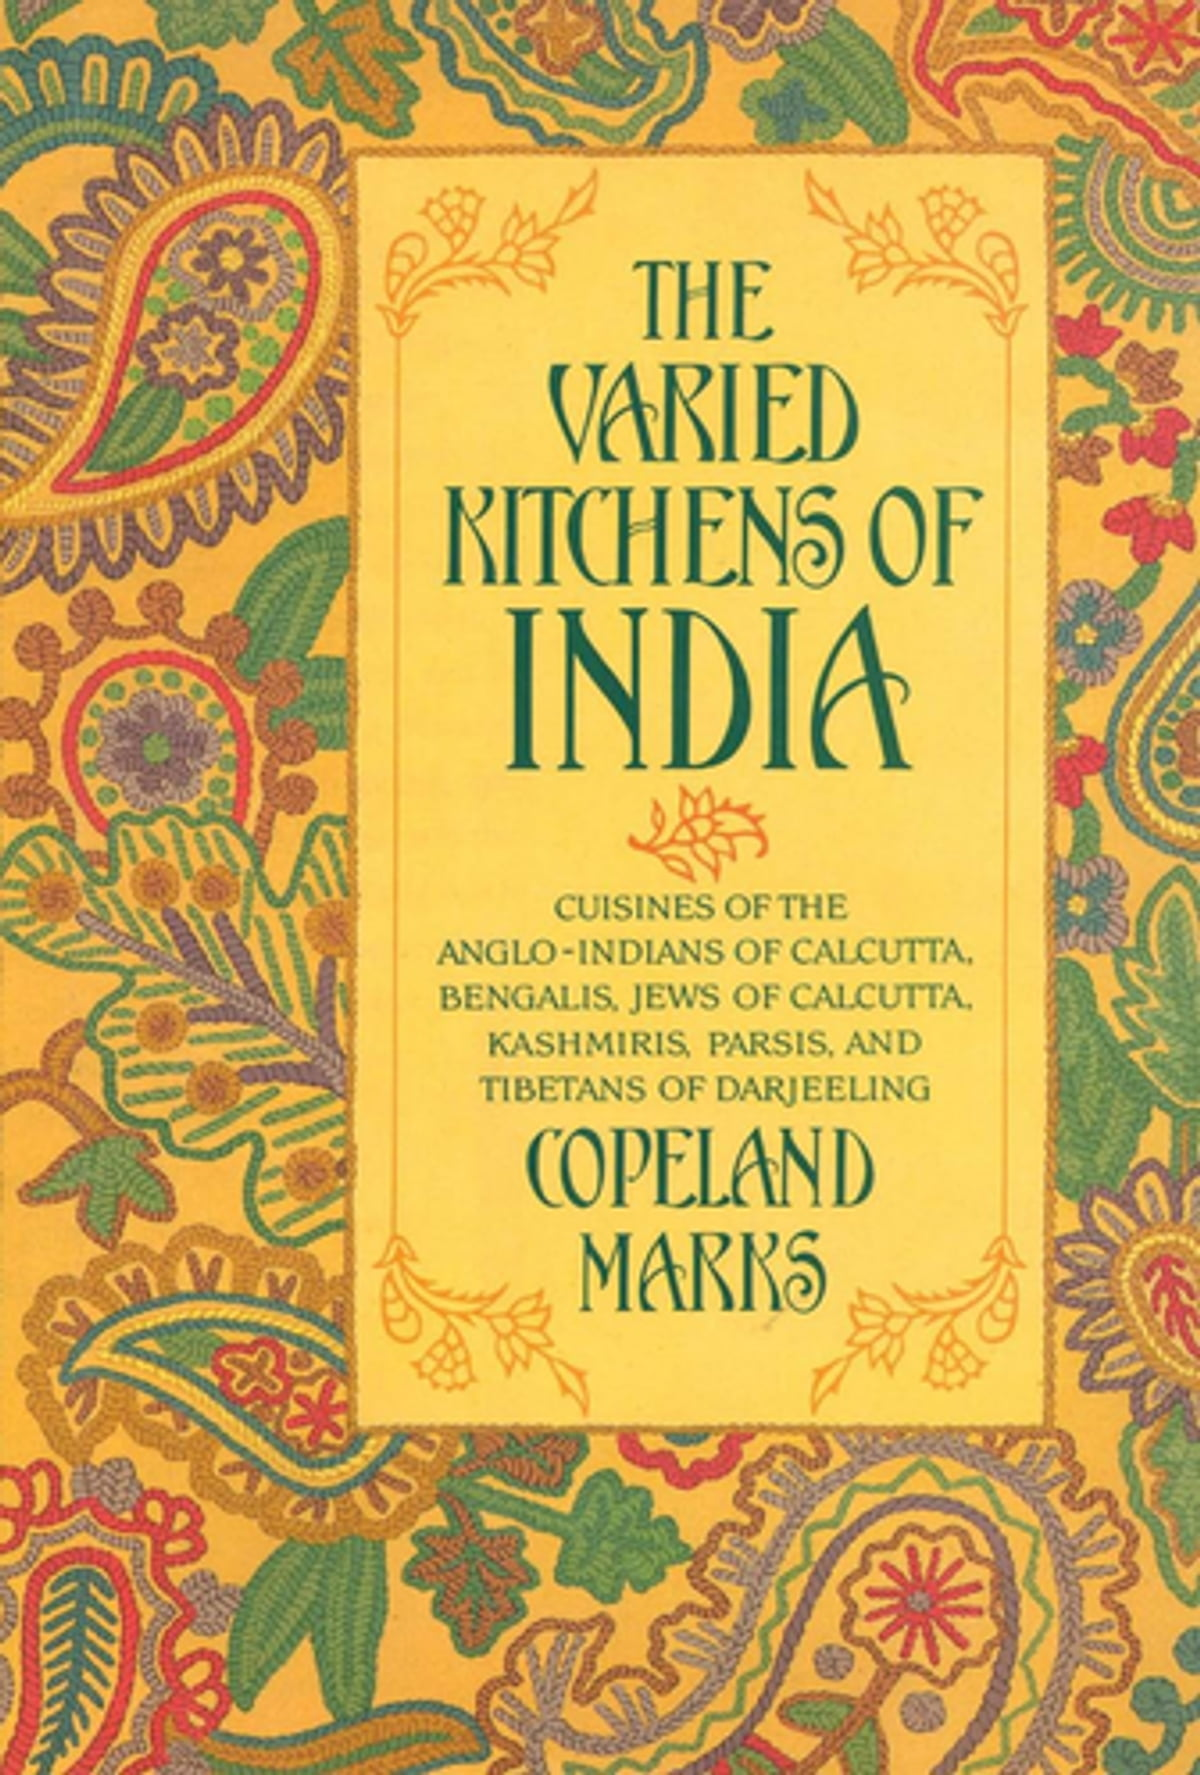 kitchens of india how to fix up old kitchen cabinets varied ebook by copeland marks 9781590772591 rakuten kobo